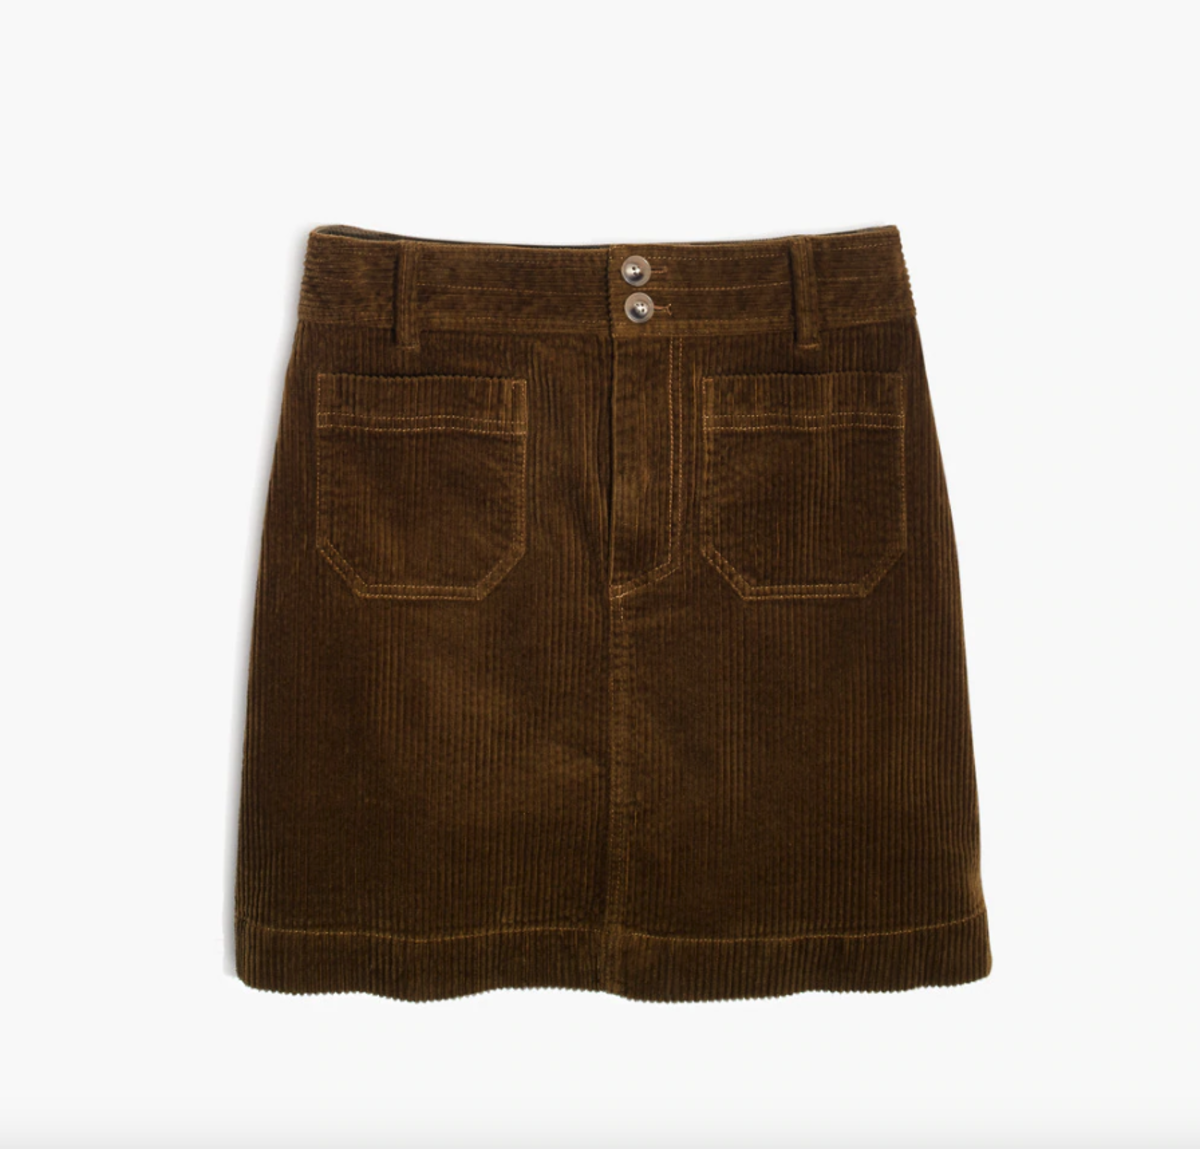 Madewell Corduroy A-Line Mini Skirt, $79.50, available here.